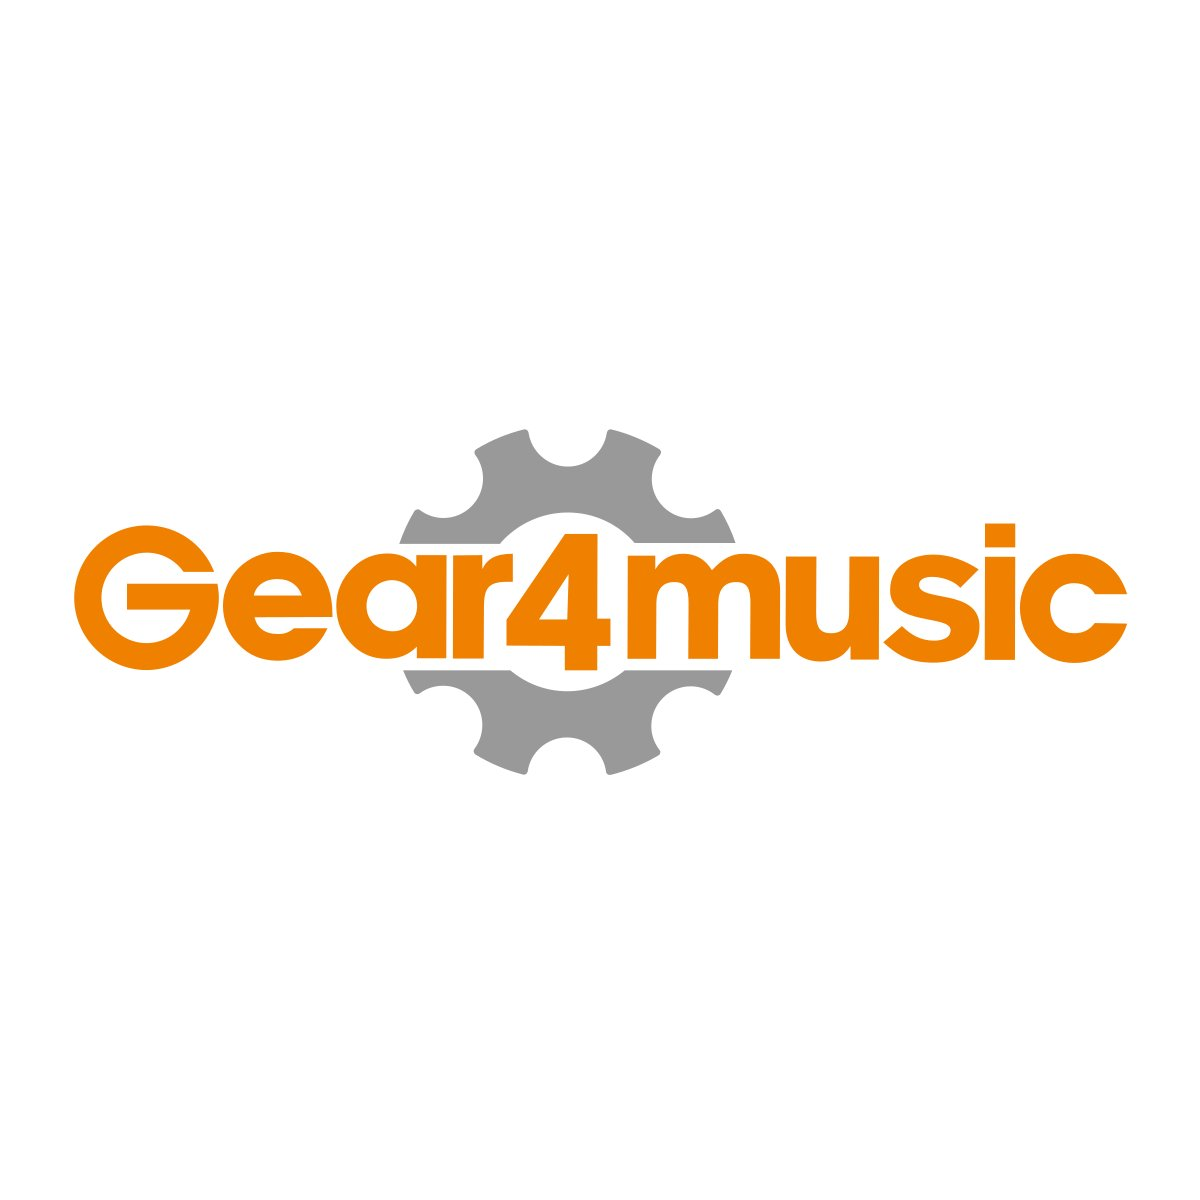 88 tasti tastiera ABS Case di Gear4music